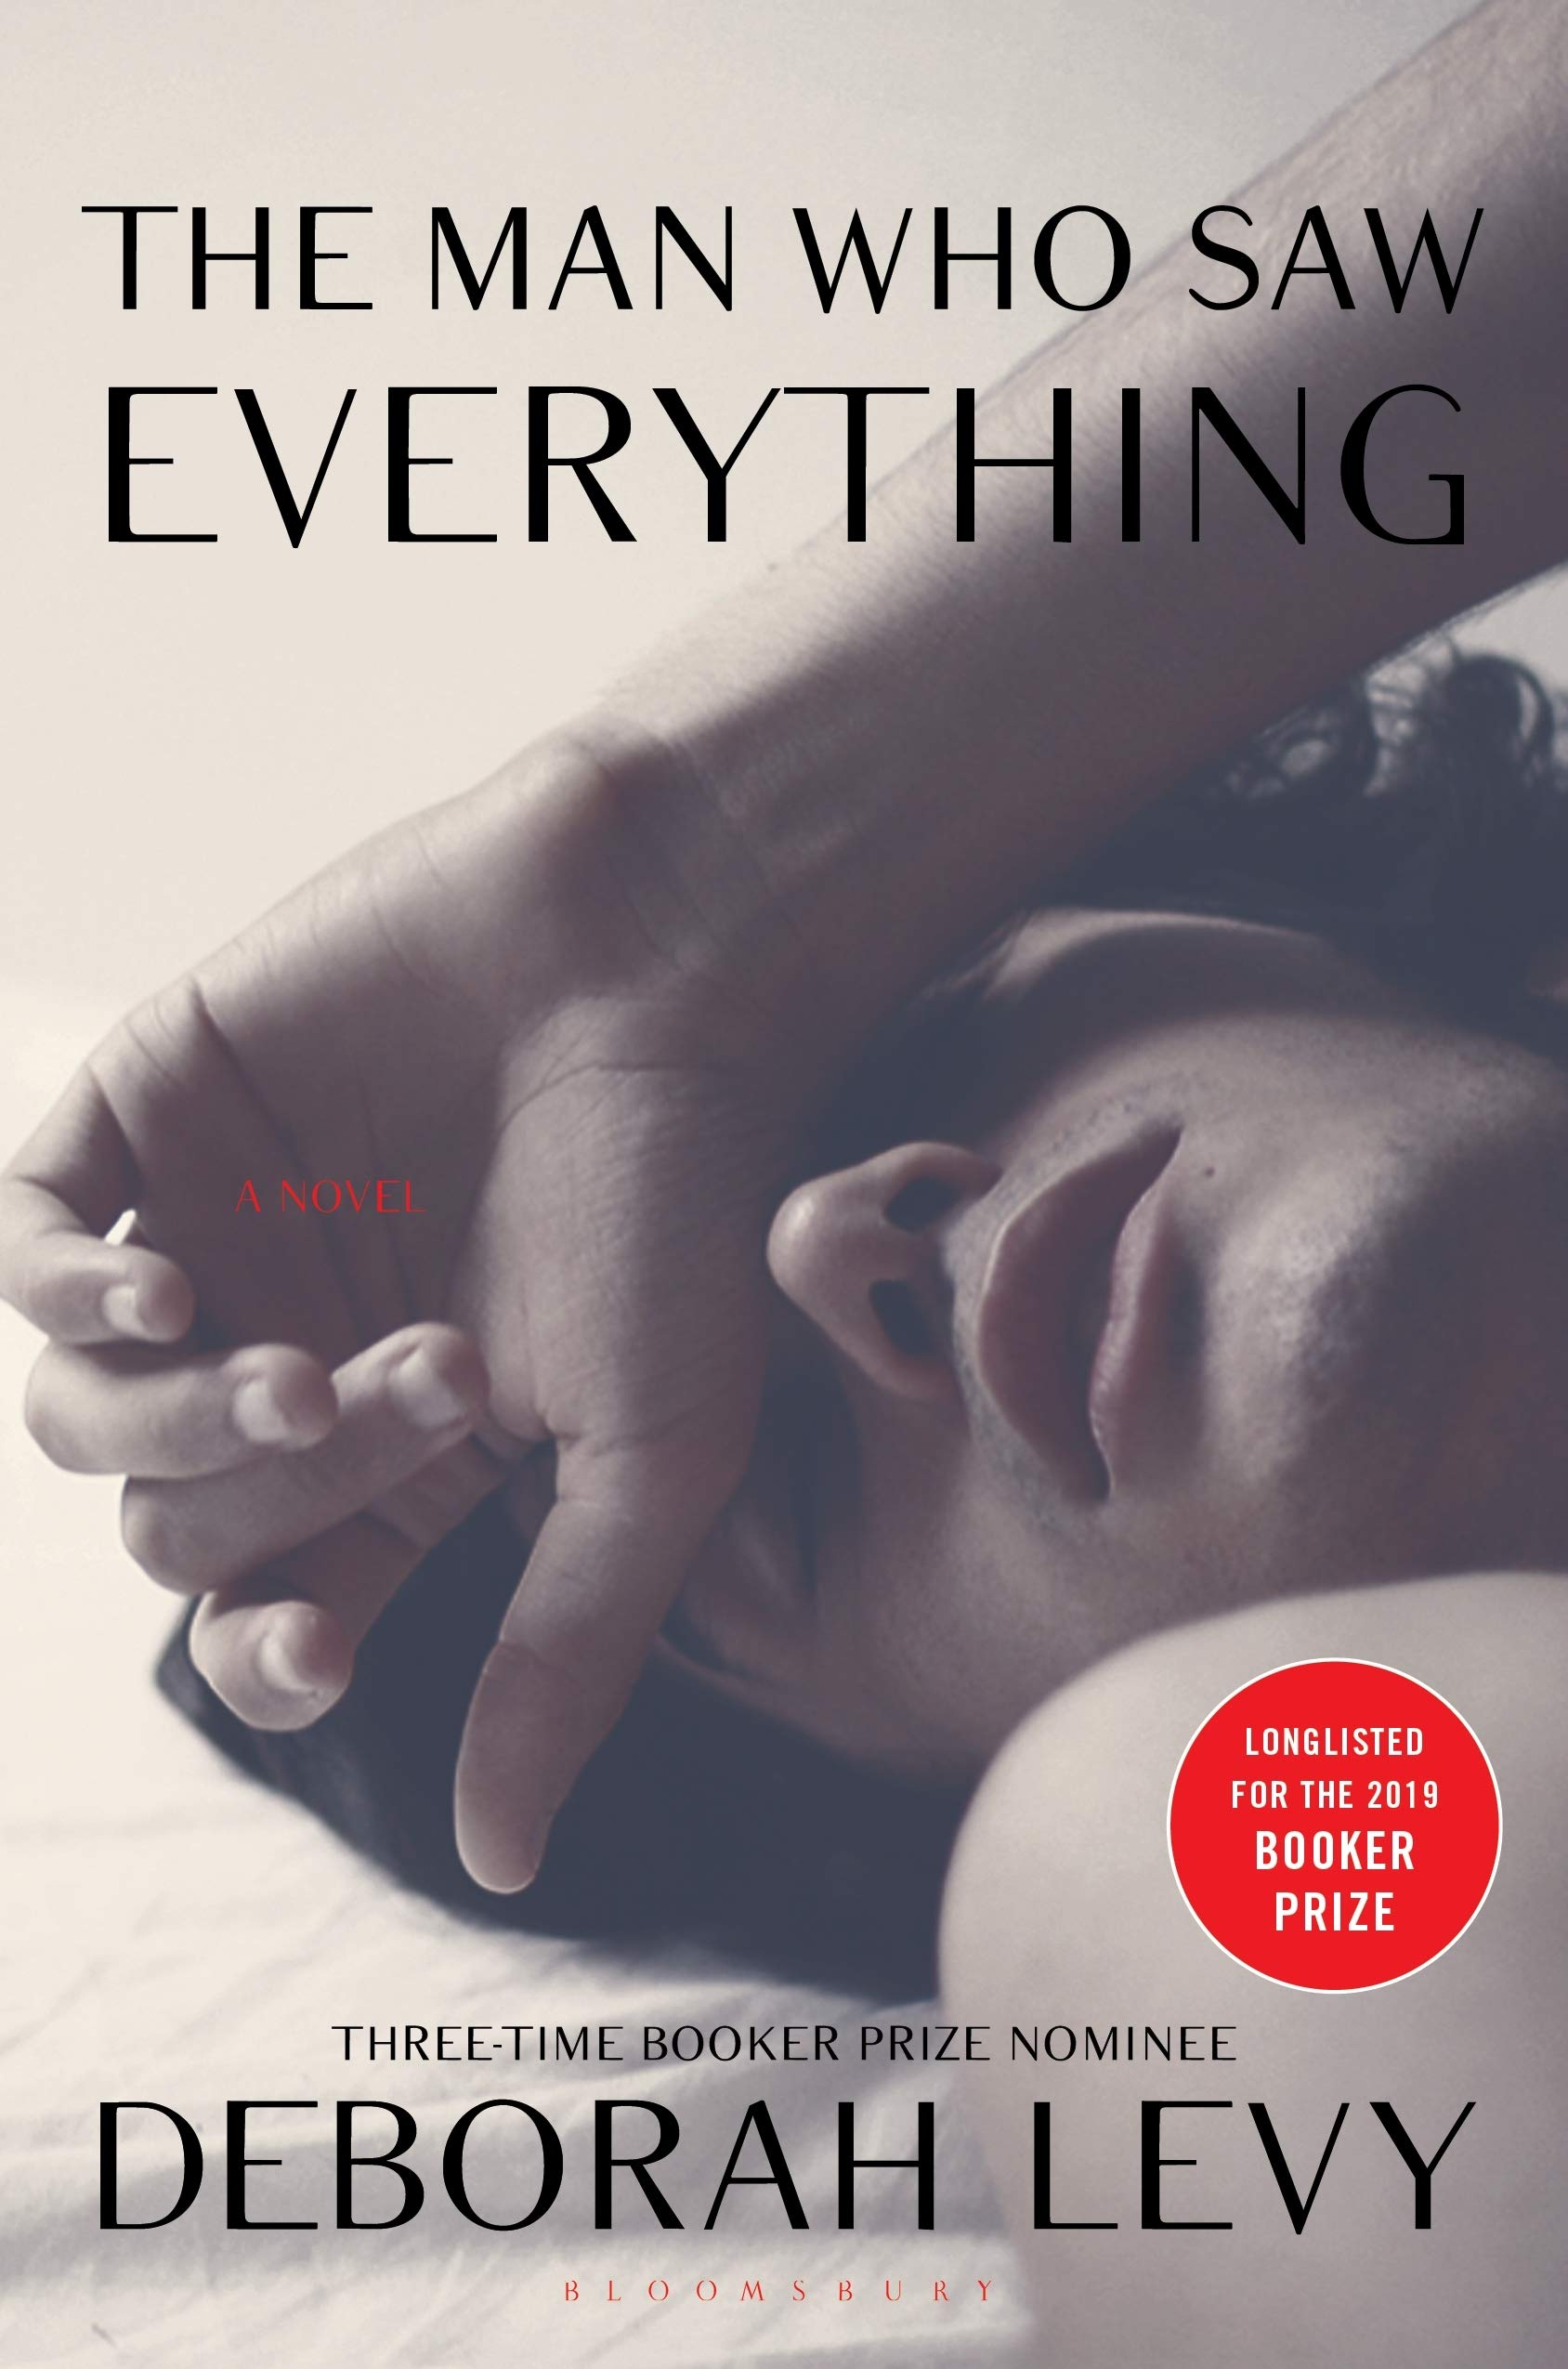 The Man Who Saw Everything by Bloomsbury Publishing